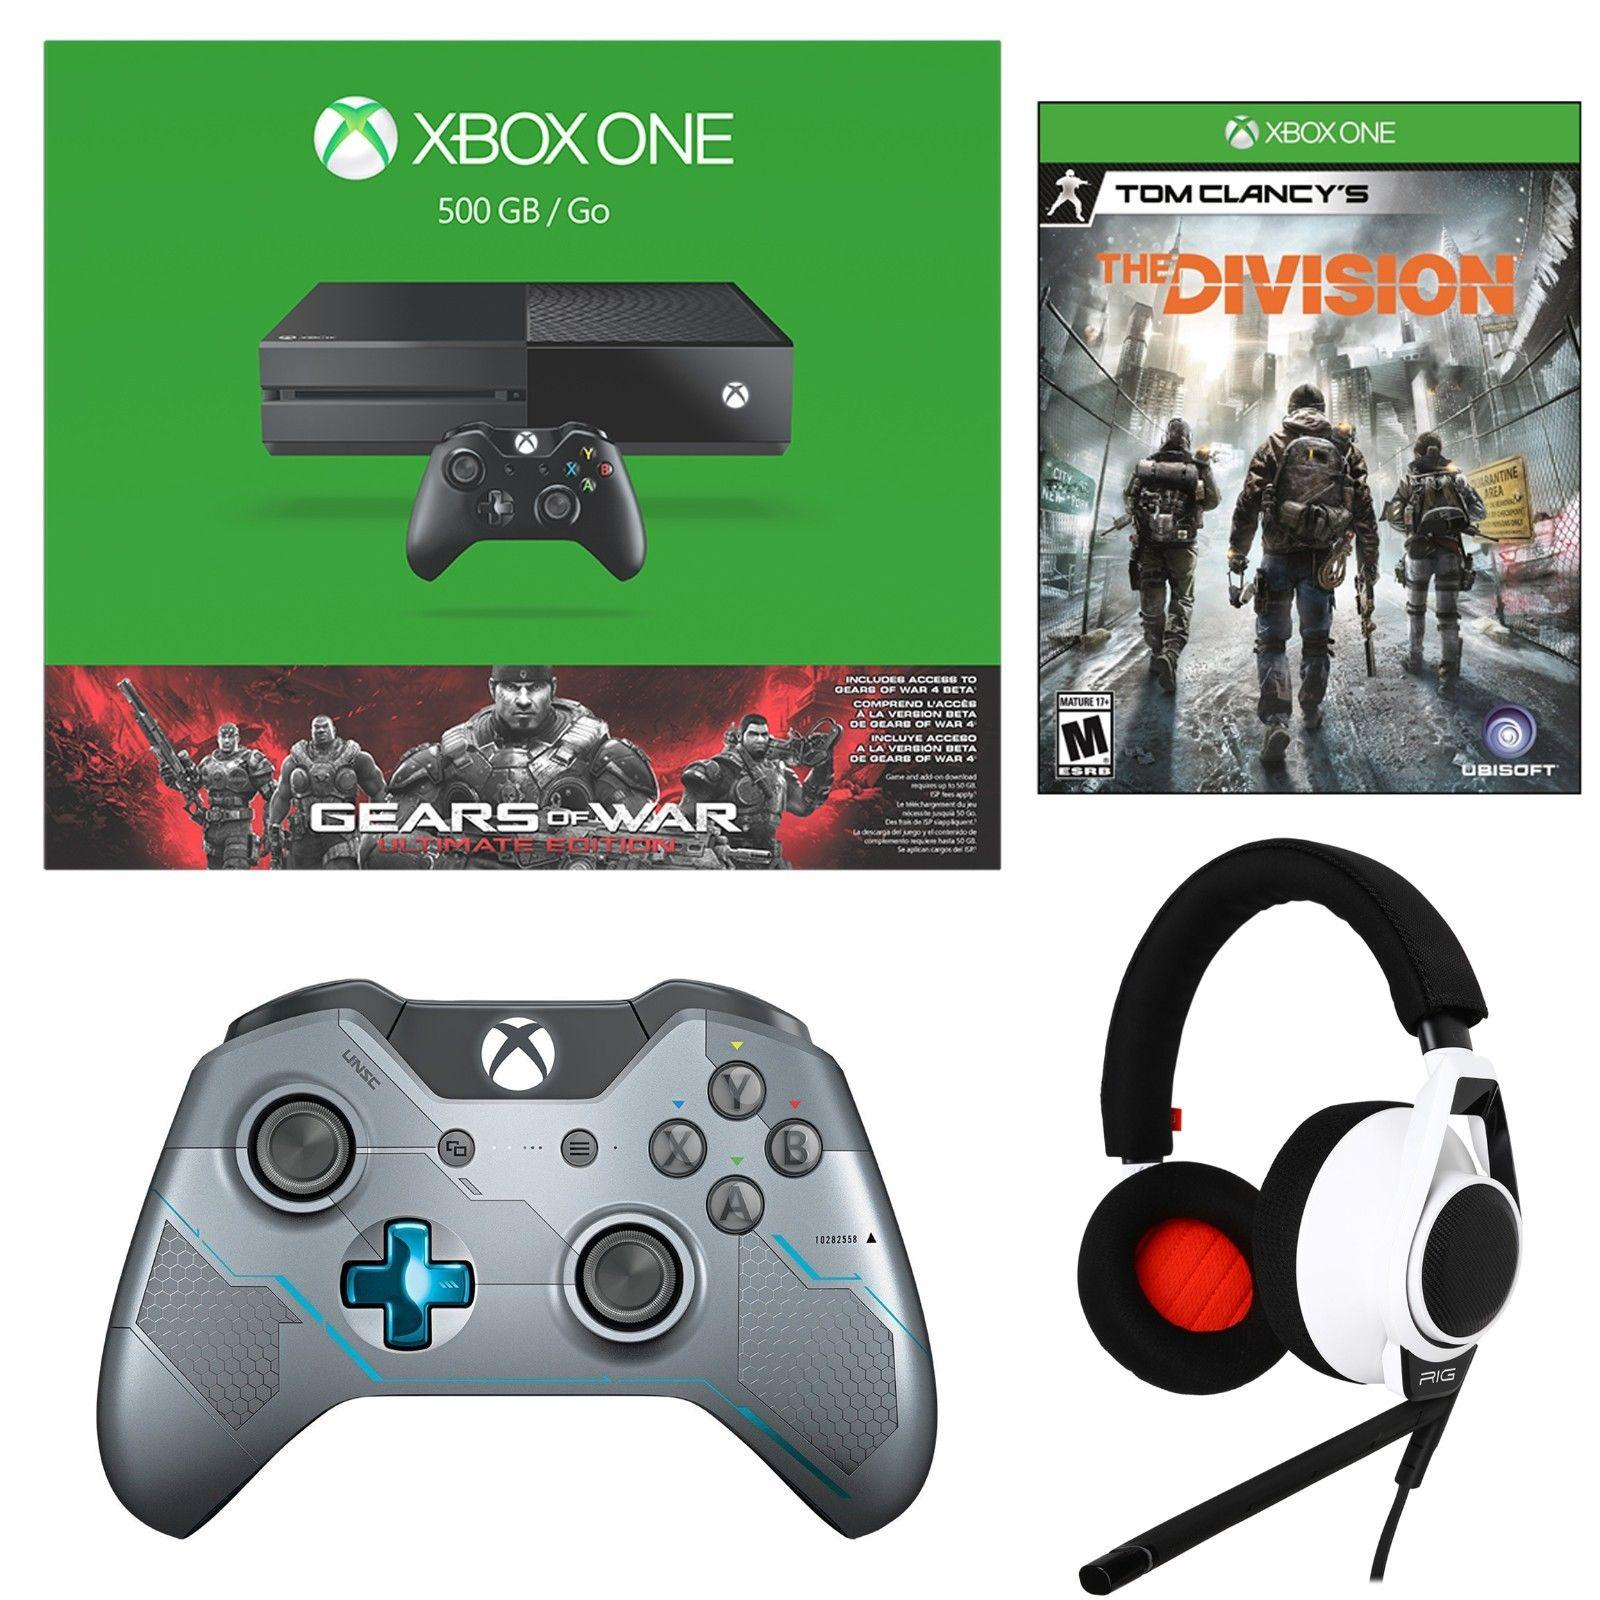 $359 Xbox One 500GB Bundle+ Tom Clancy's Division+ Halo 5 Controller+ Rig Flex Heads